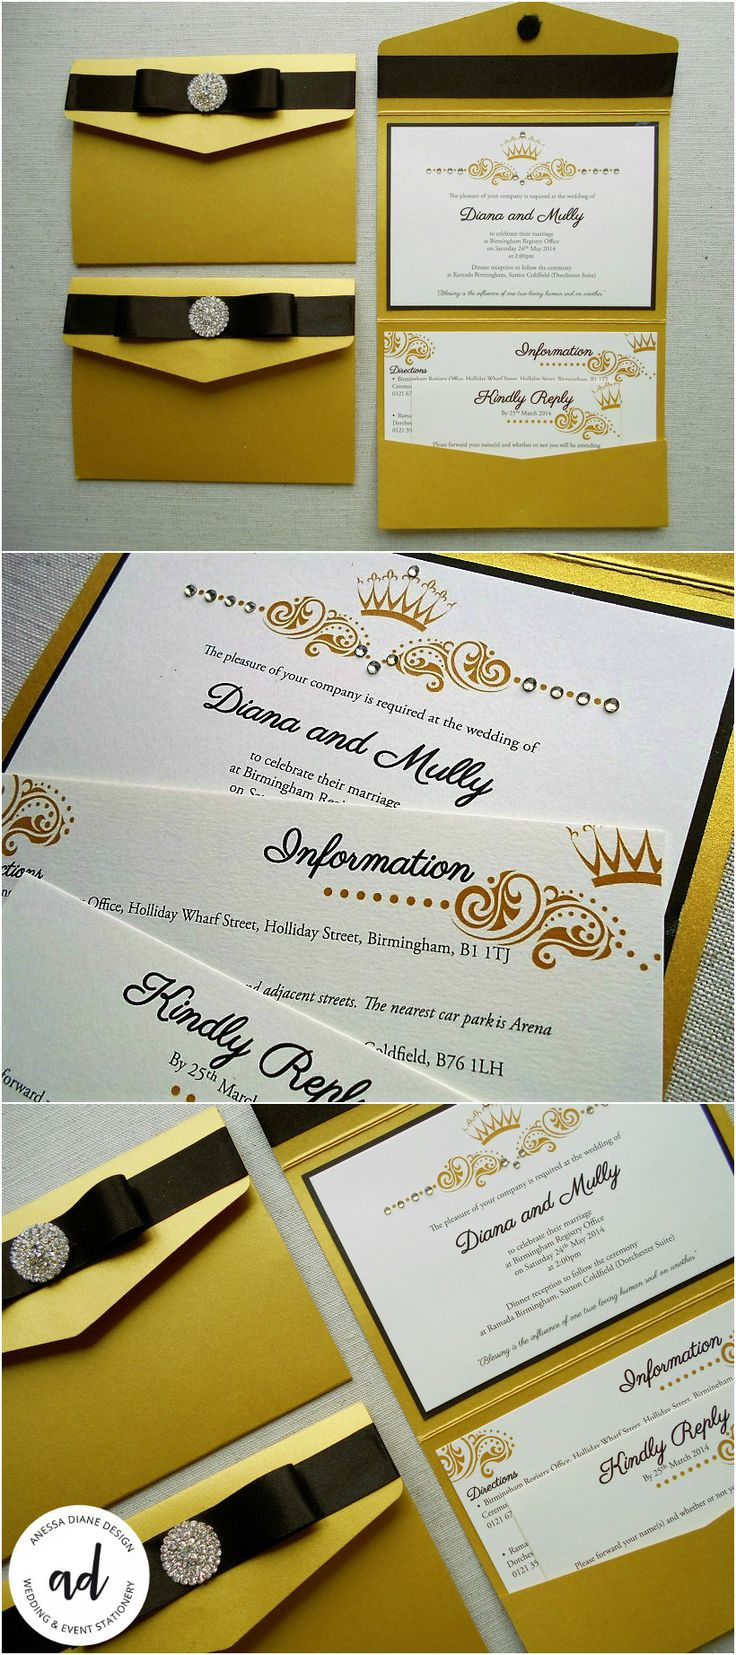 wedding stationery packages uk%0A Black and gold elegance  shimmering gold Pocketfold wedding invitation hand  finished with a satin bow luxurious diamante button and    gold rhinestones